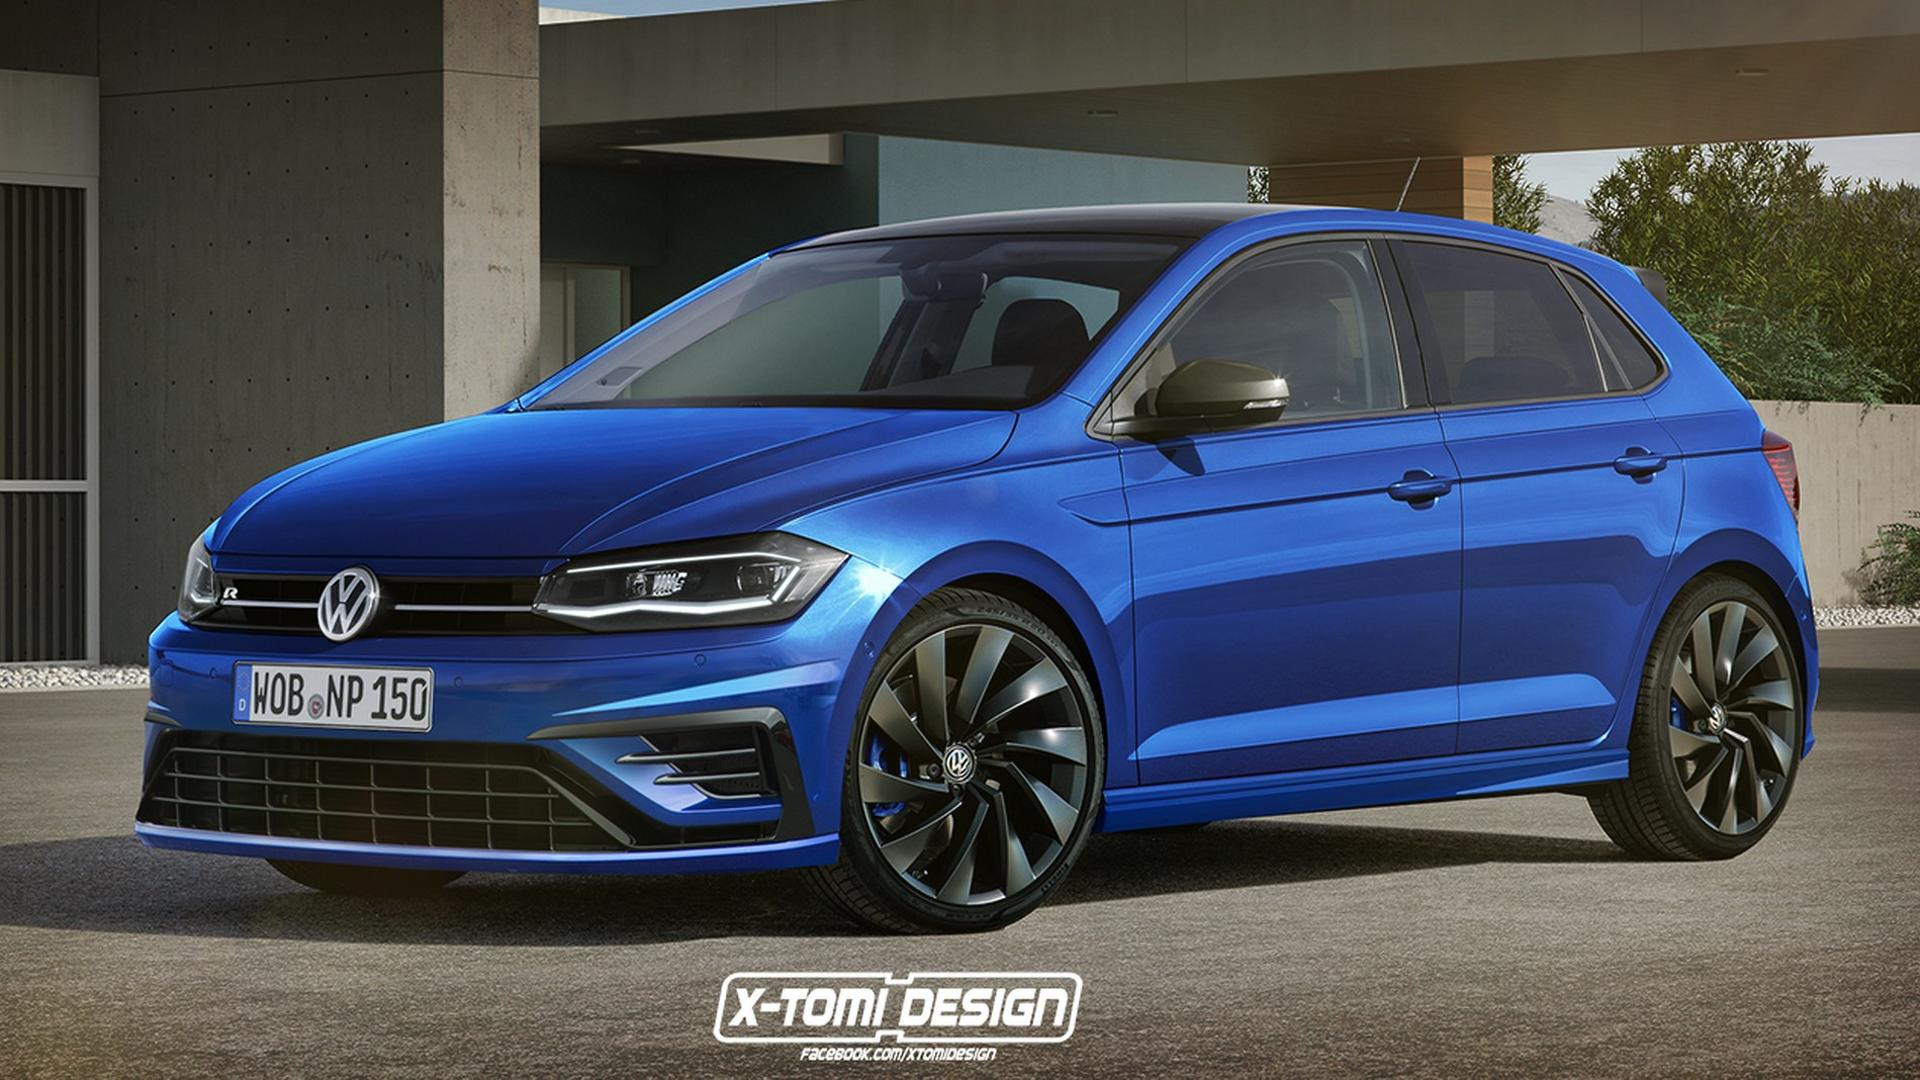 300 Horsepower Vw Polo R Believed To Be In Testing Phase Already